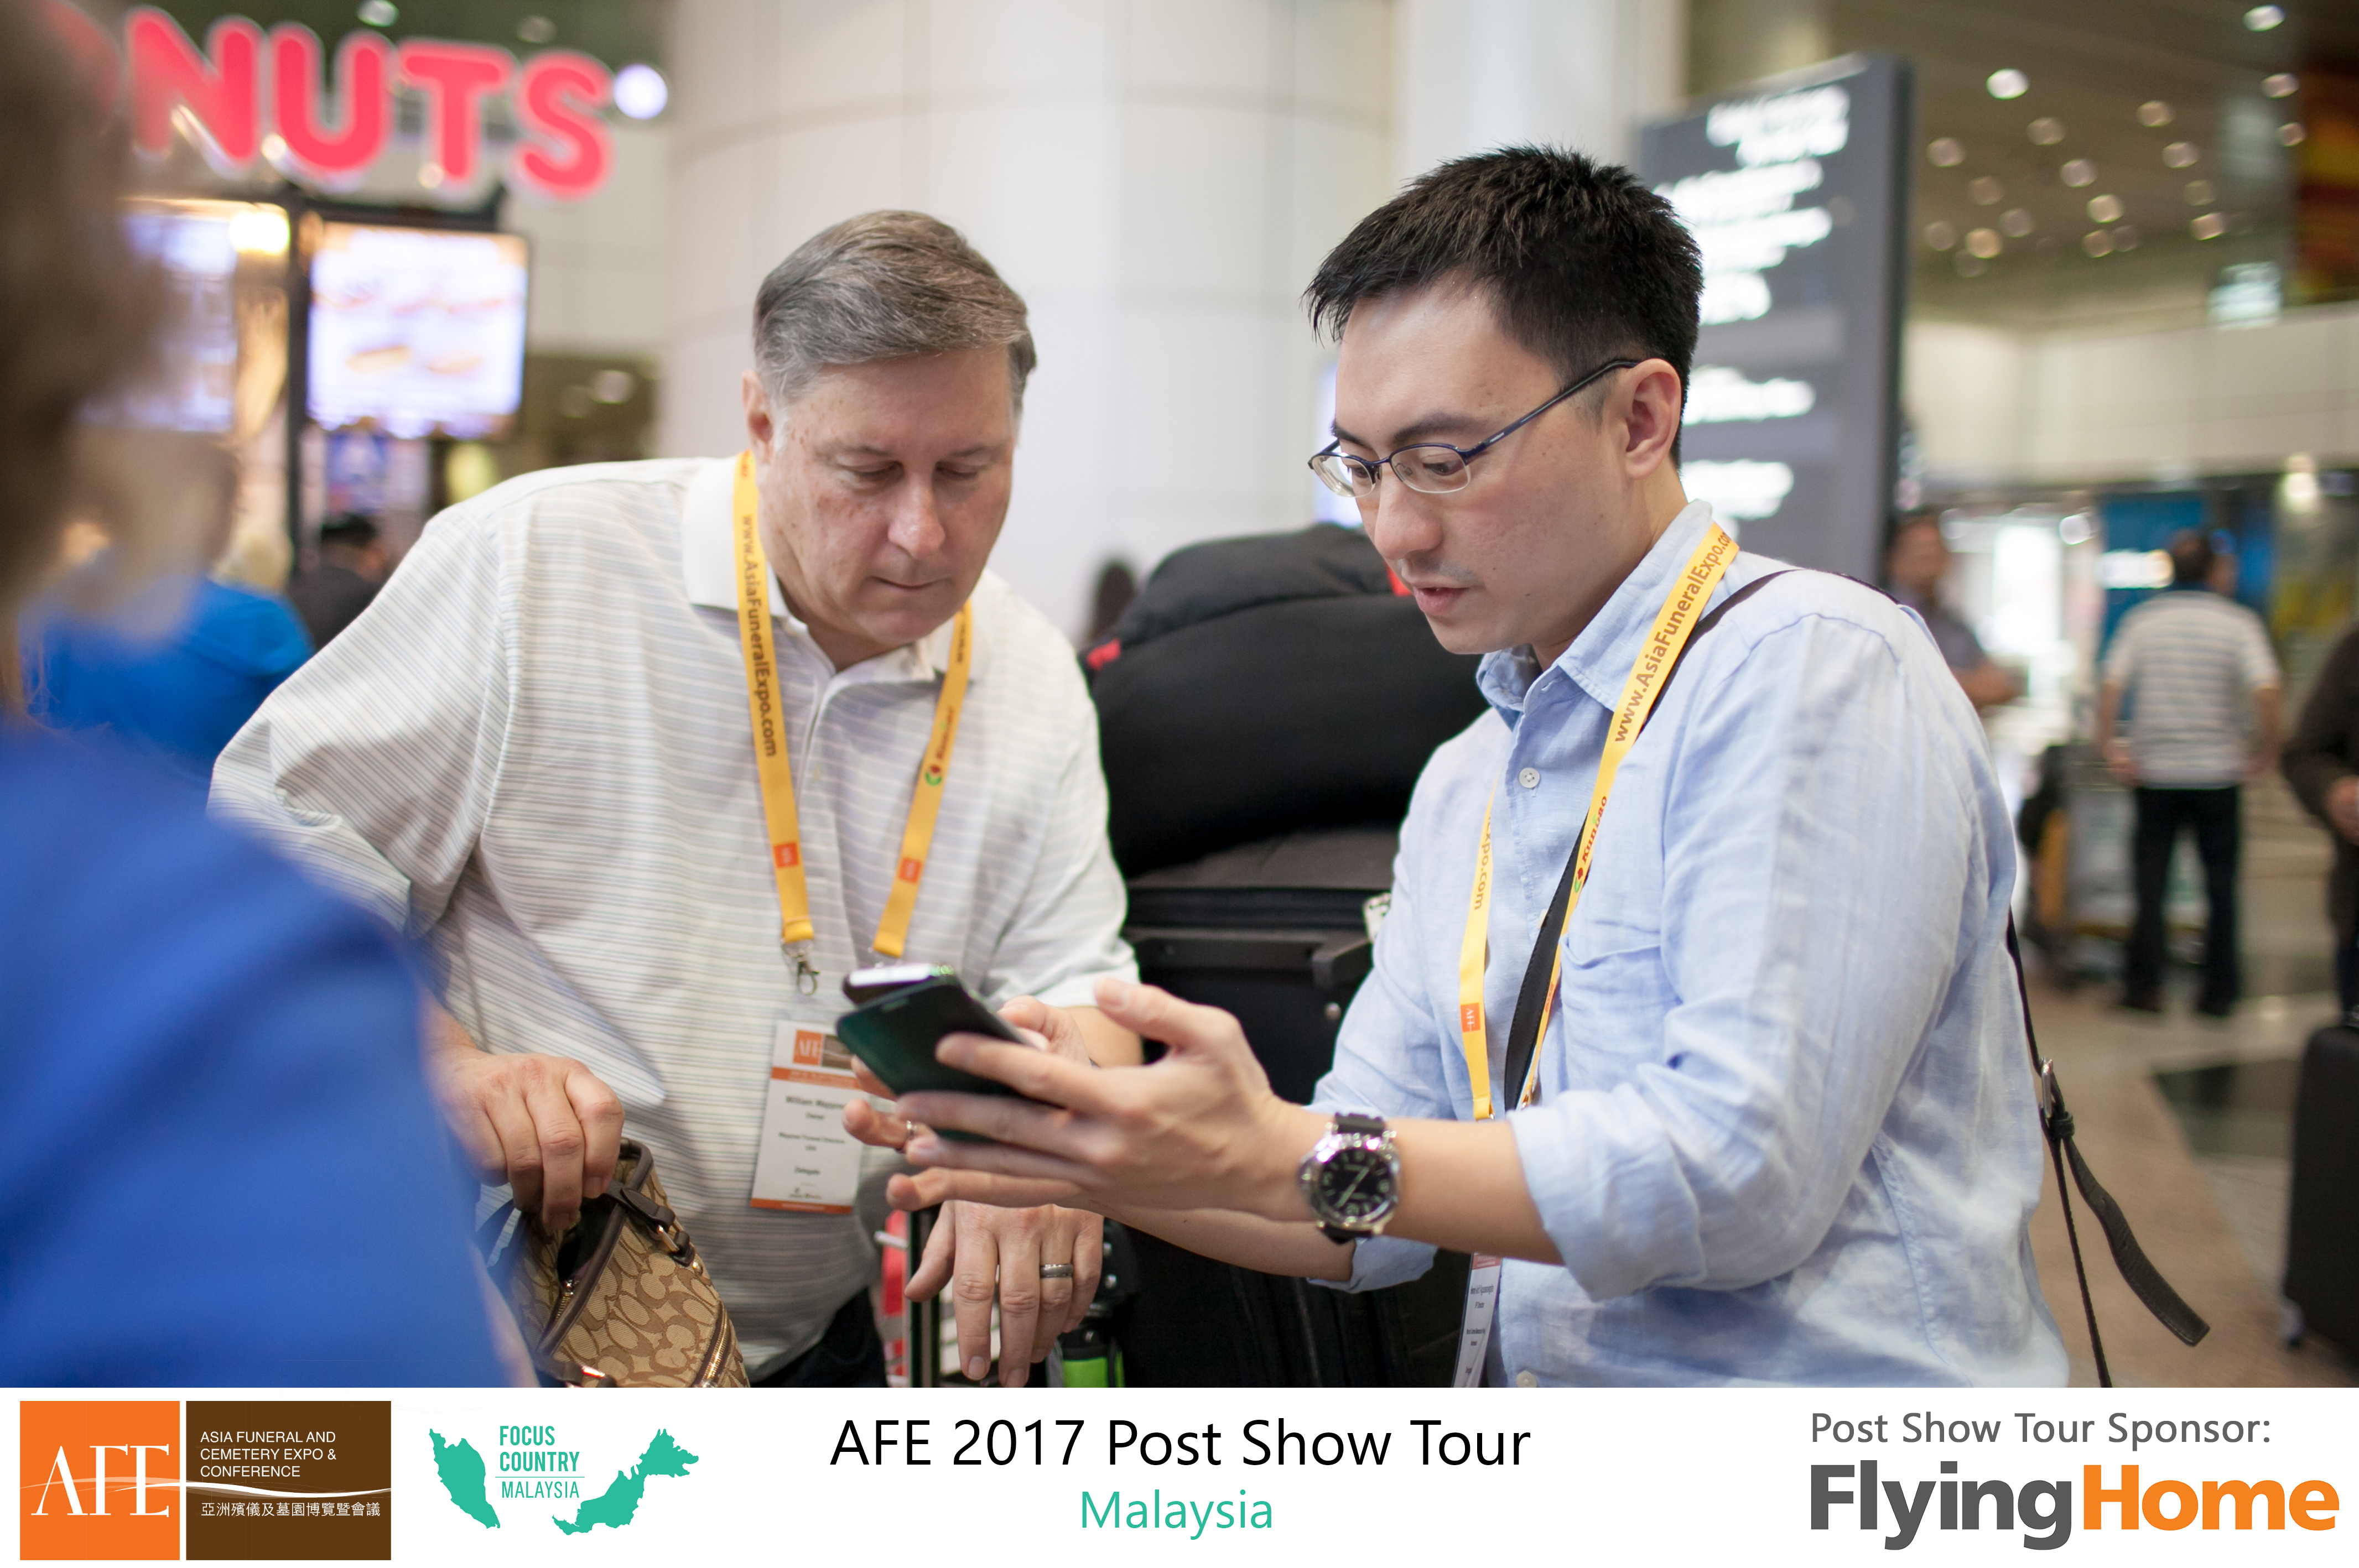 AFE Post Show Tour 2017 Day 1 - 03